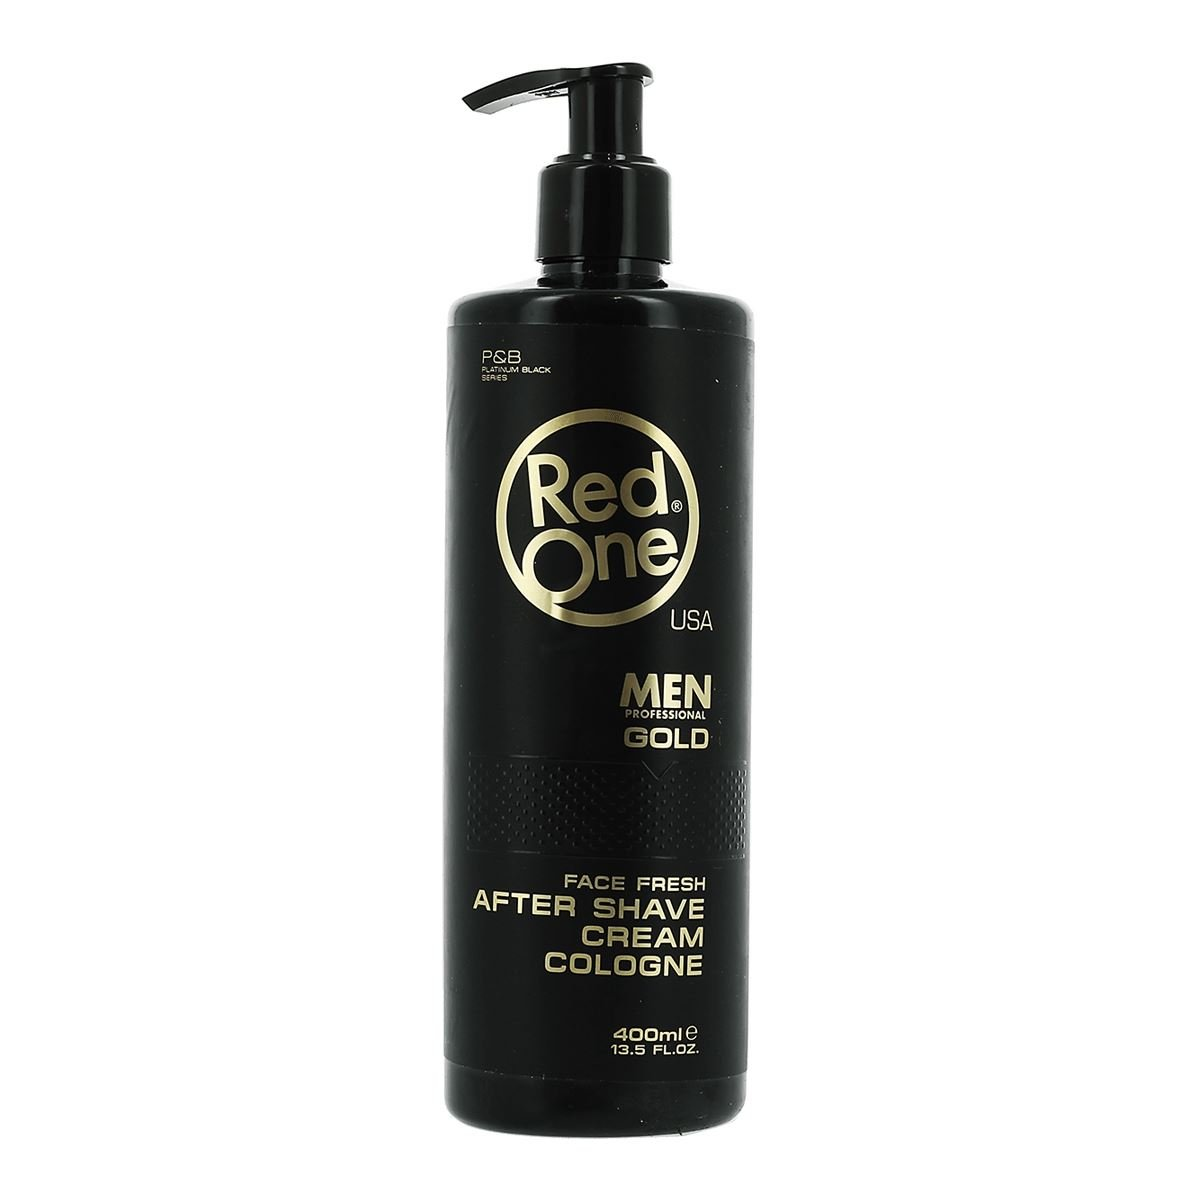 Red One Gold After Shave Cream Cologne 400ml